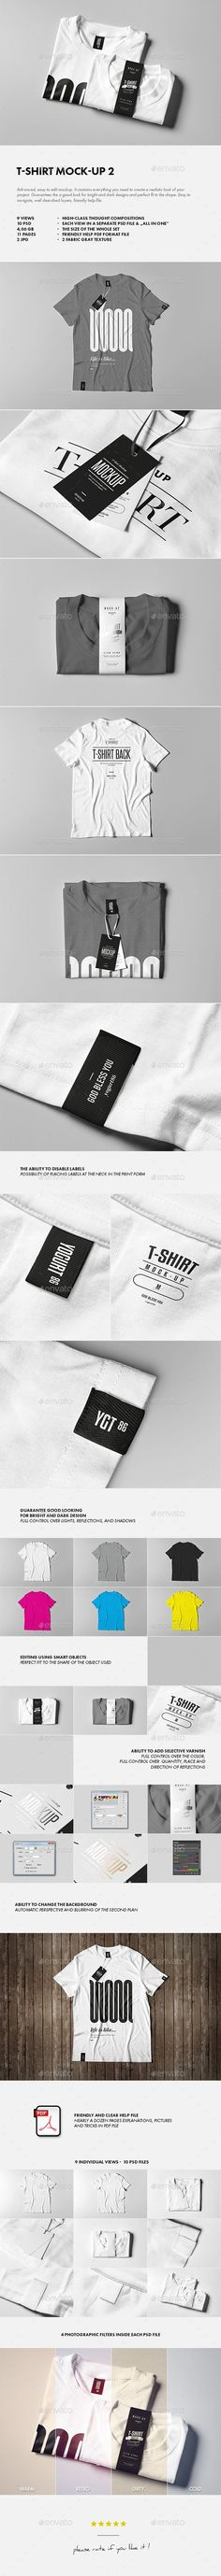 Buy T-Shirt Mock-up 2 by on GraphicRiver. T-SHIRT MOCK-UP 2 Advanced, easy to edit mockup. It contains everything you need to create a realistic look of your p. T Shirt Logo Design, T Shirt Design Template, Shirt Designs, Graphic Design, Label Design, Packaging Design, Restaurant Logo, Shirt Label, Shirt Packaging